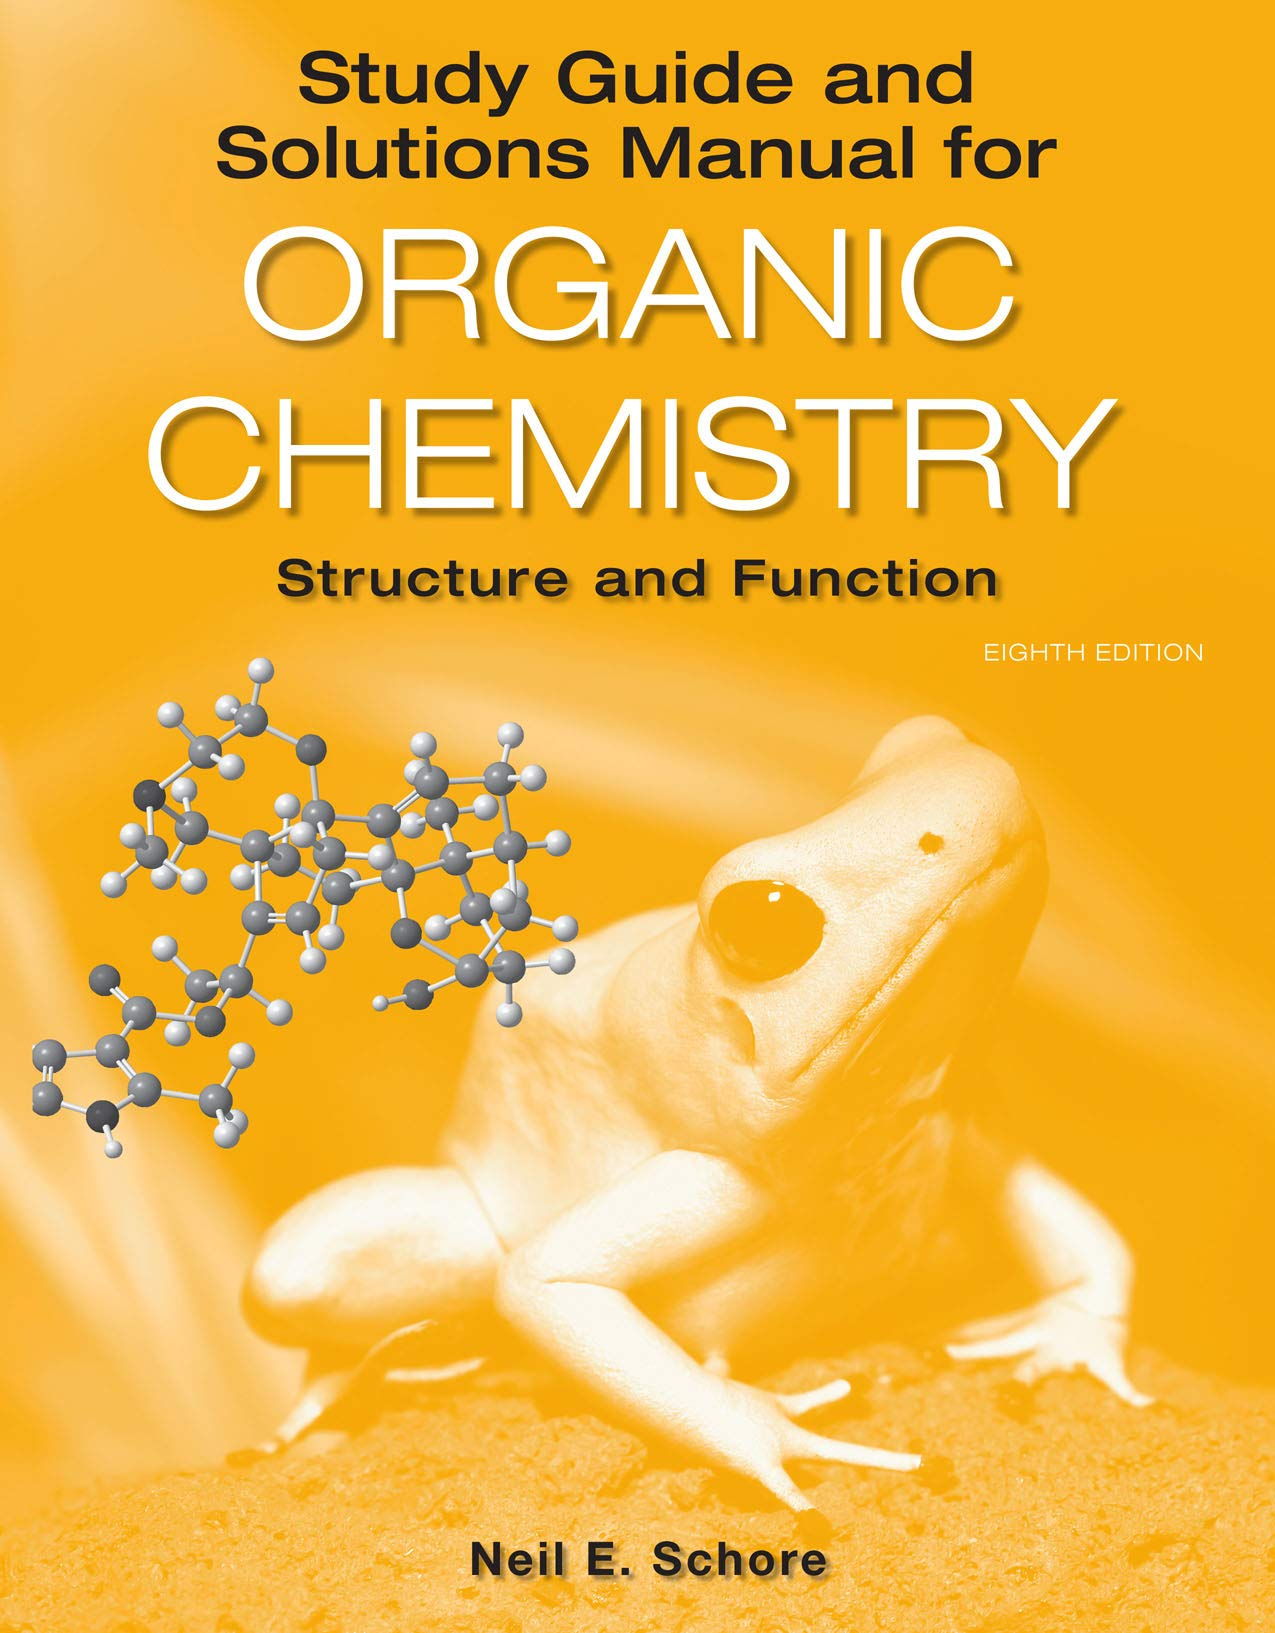 Study Guide Solutions Manual For Organic Chemistry Structure And Function Ebook Vollhardt K Peter C Schore Neil E Kindle Store